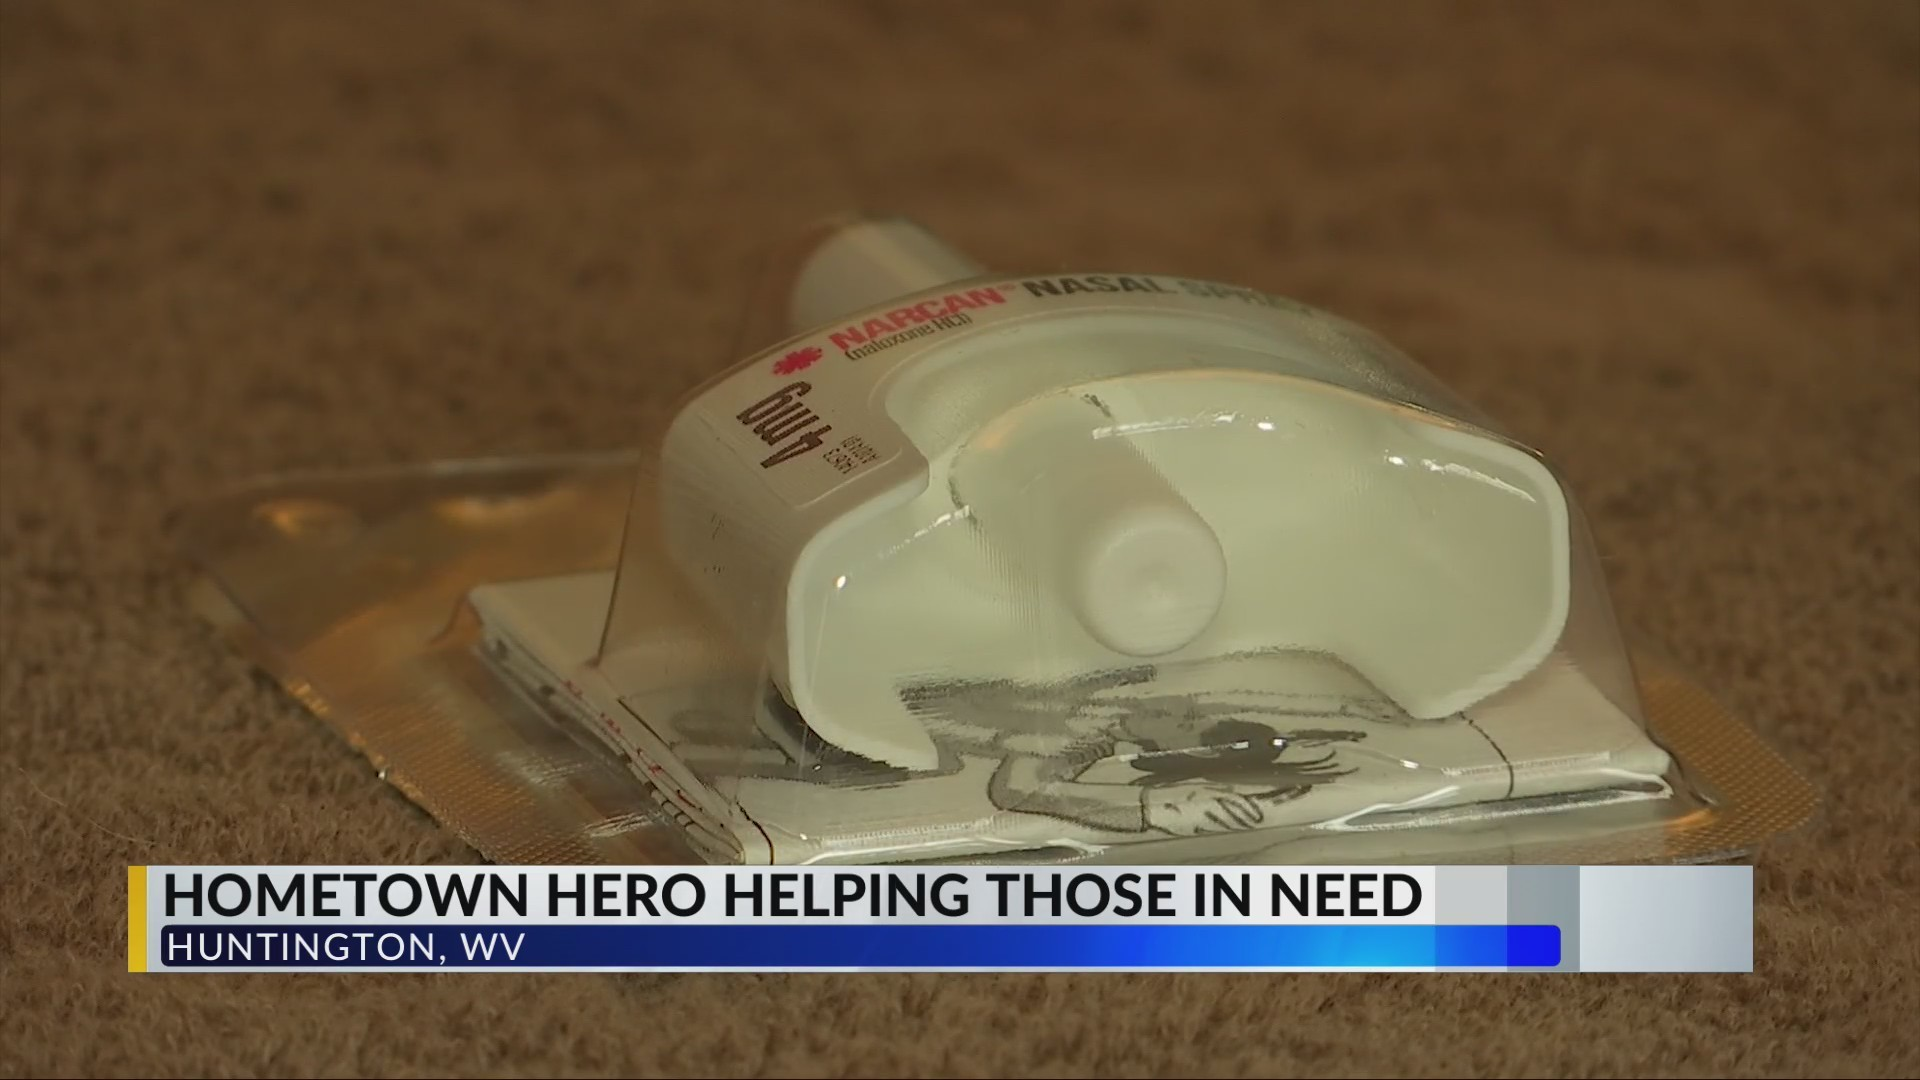 Hometown Hero Helping Those in Need